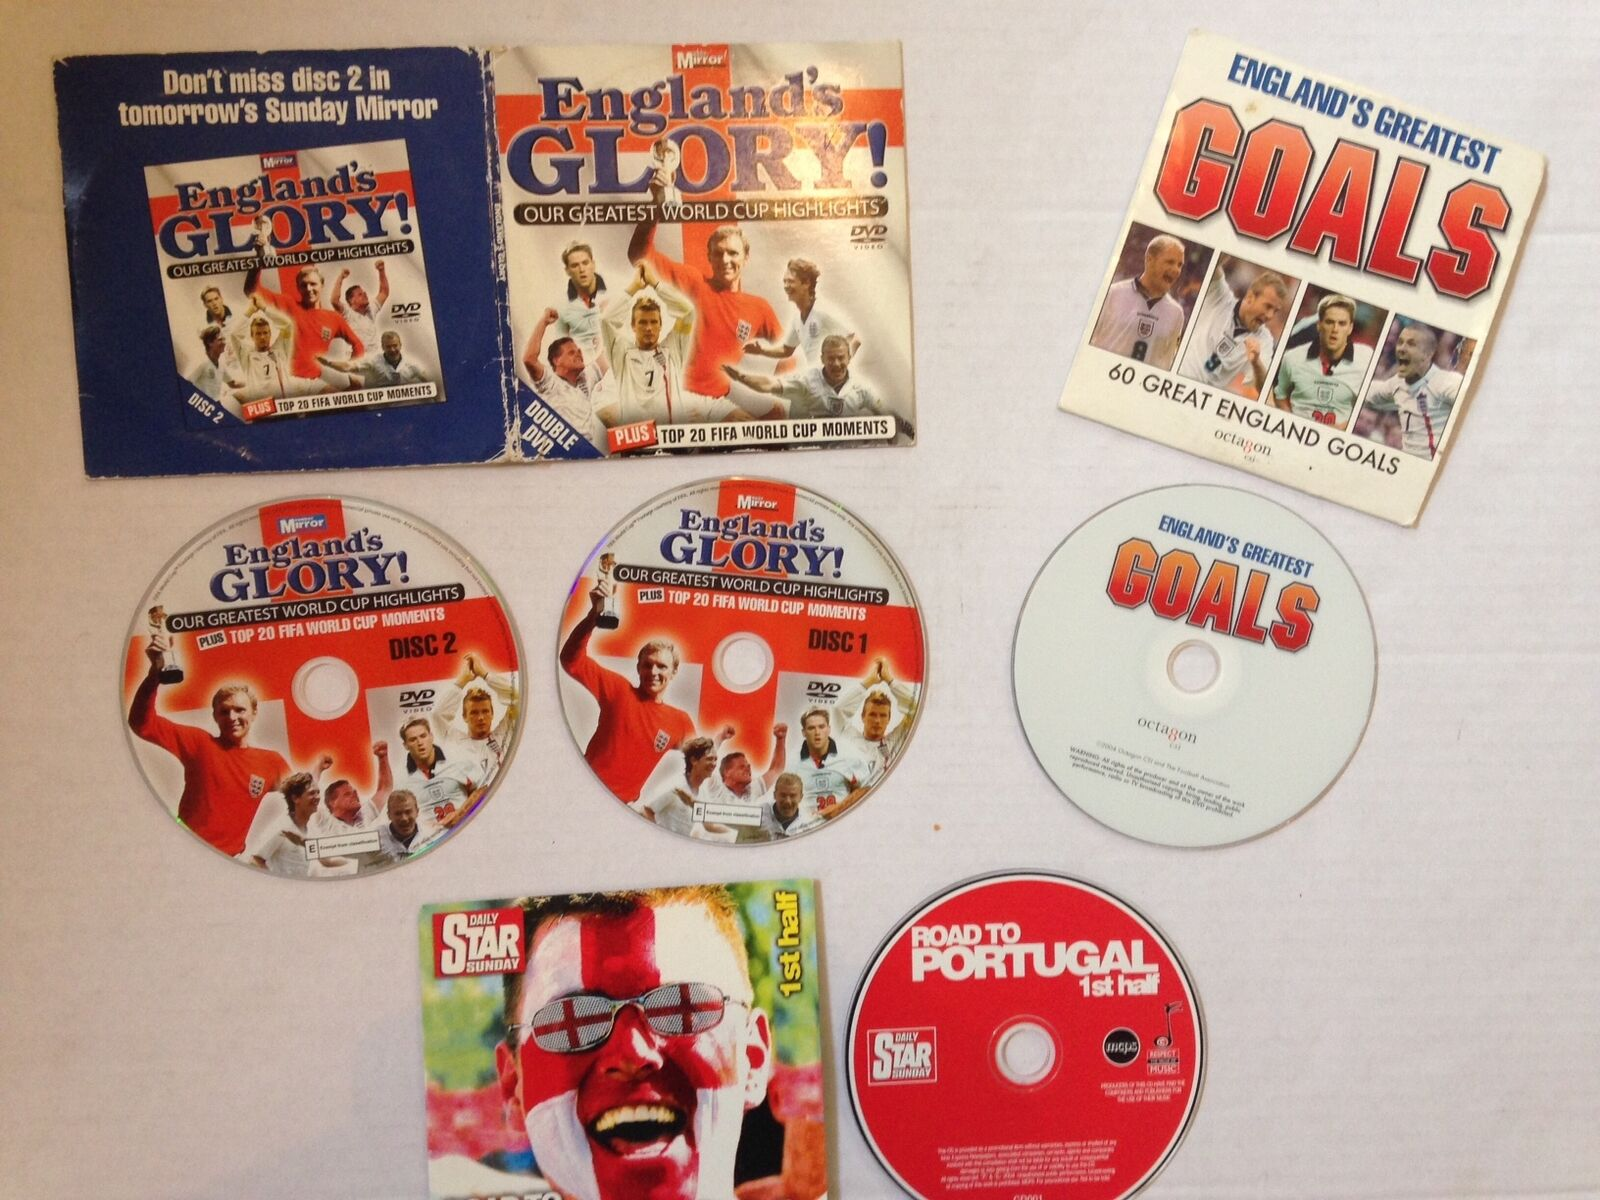 ENGLAND DVD x 3 CD x1 ROAD TO PORTUGAL 60 GREAT GOALS GREATEST WORLD CUP MOMENTS